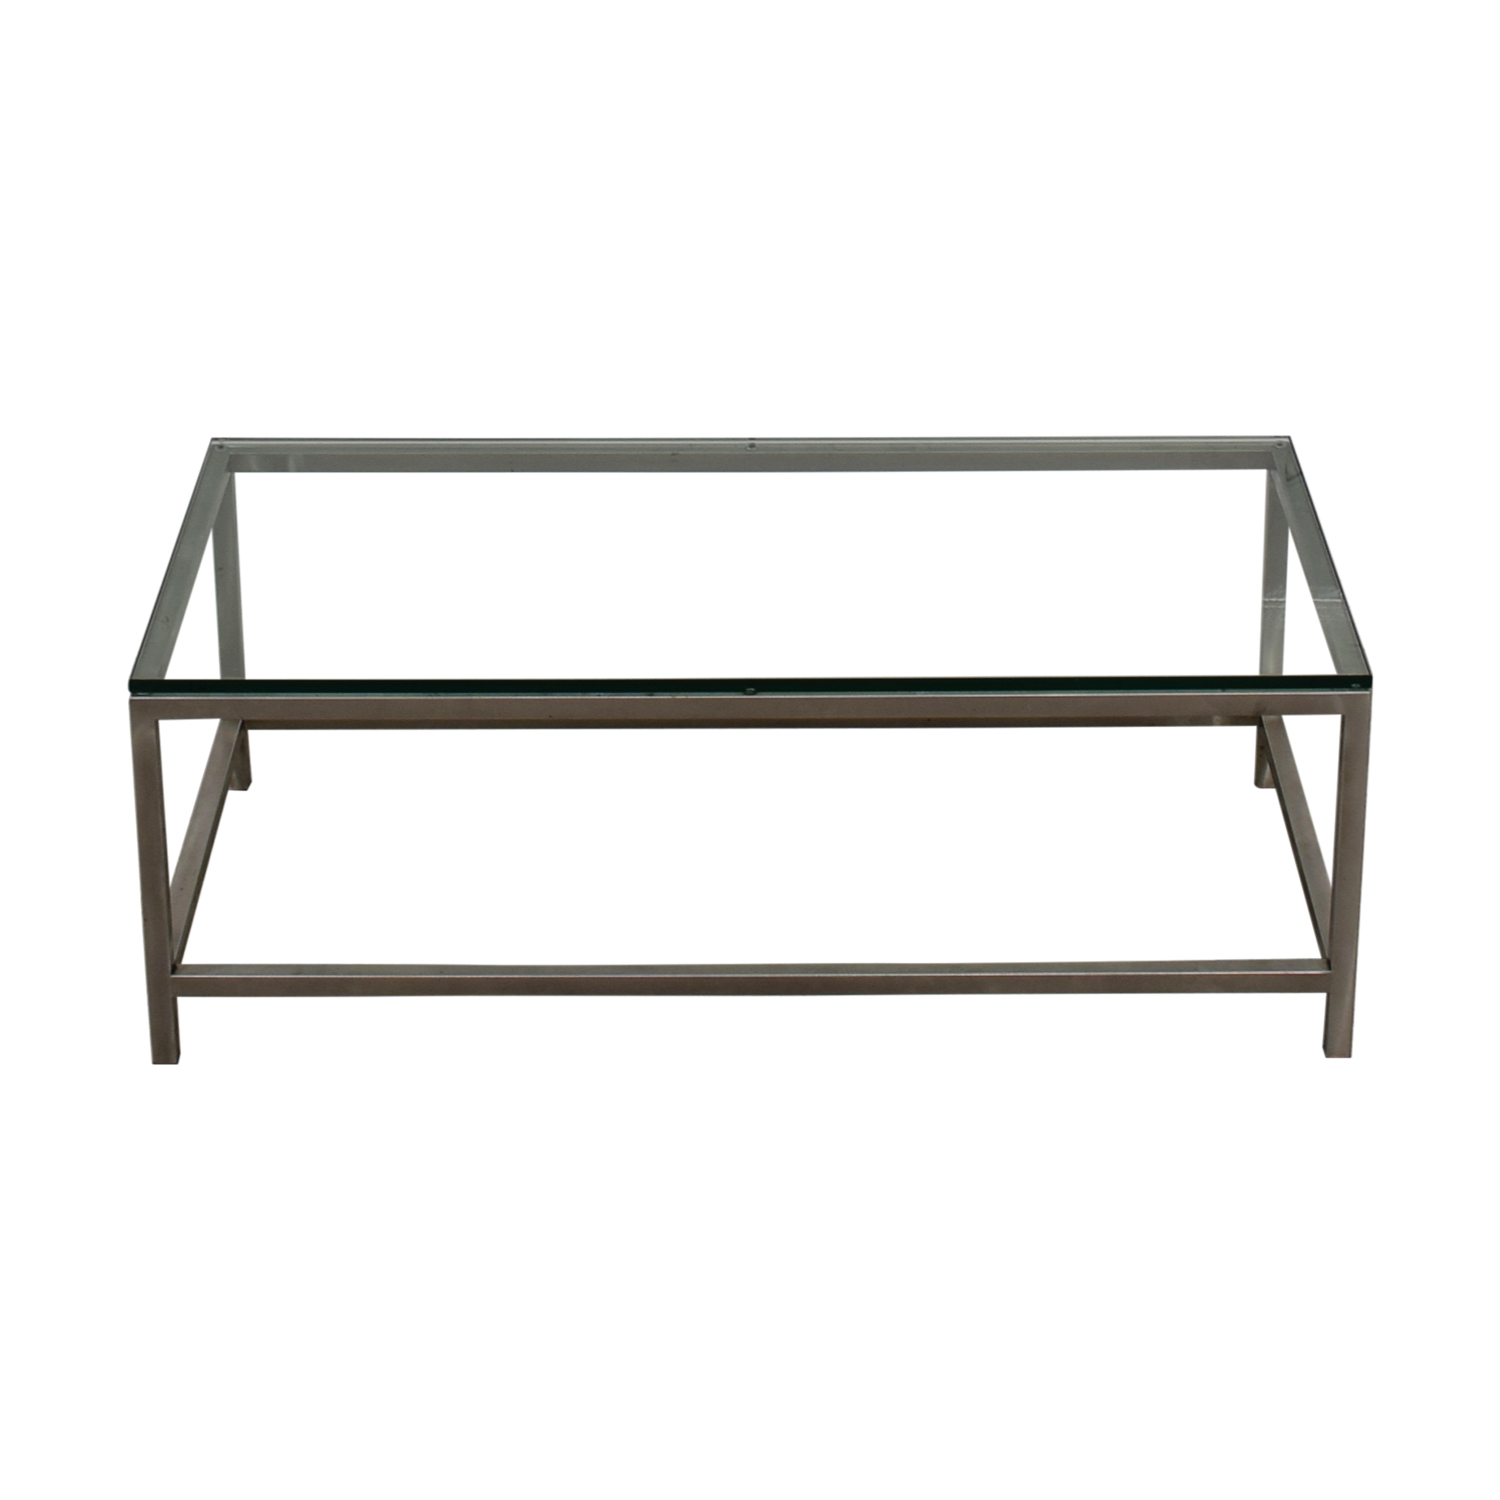 Crate & Barrel Crate & Barrel Glass and Chrome Coffee table discount